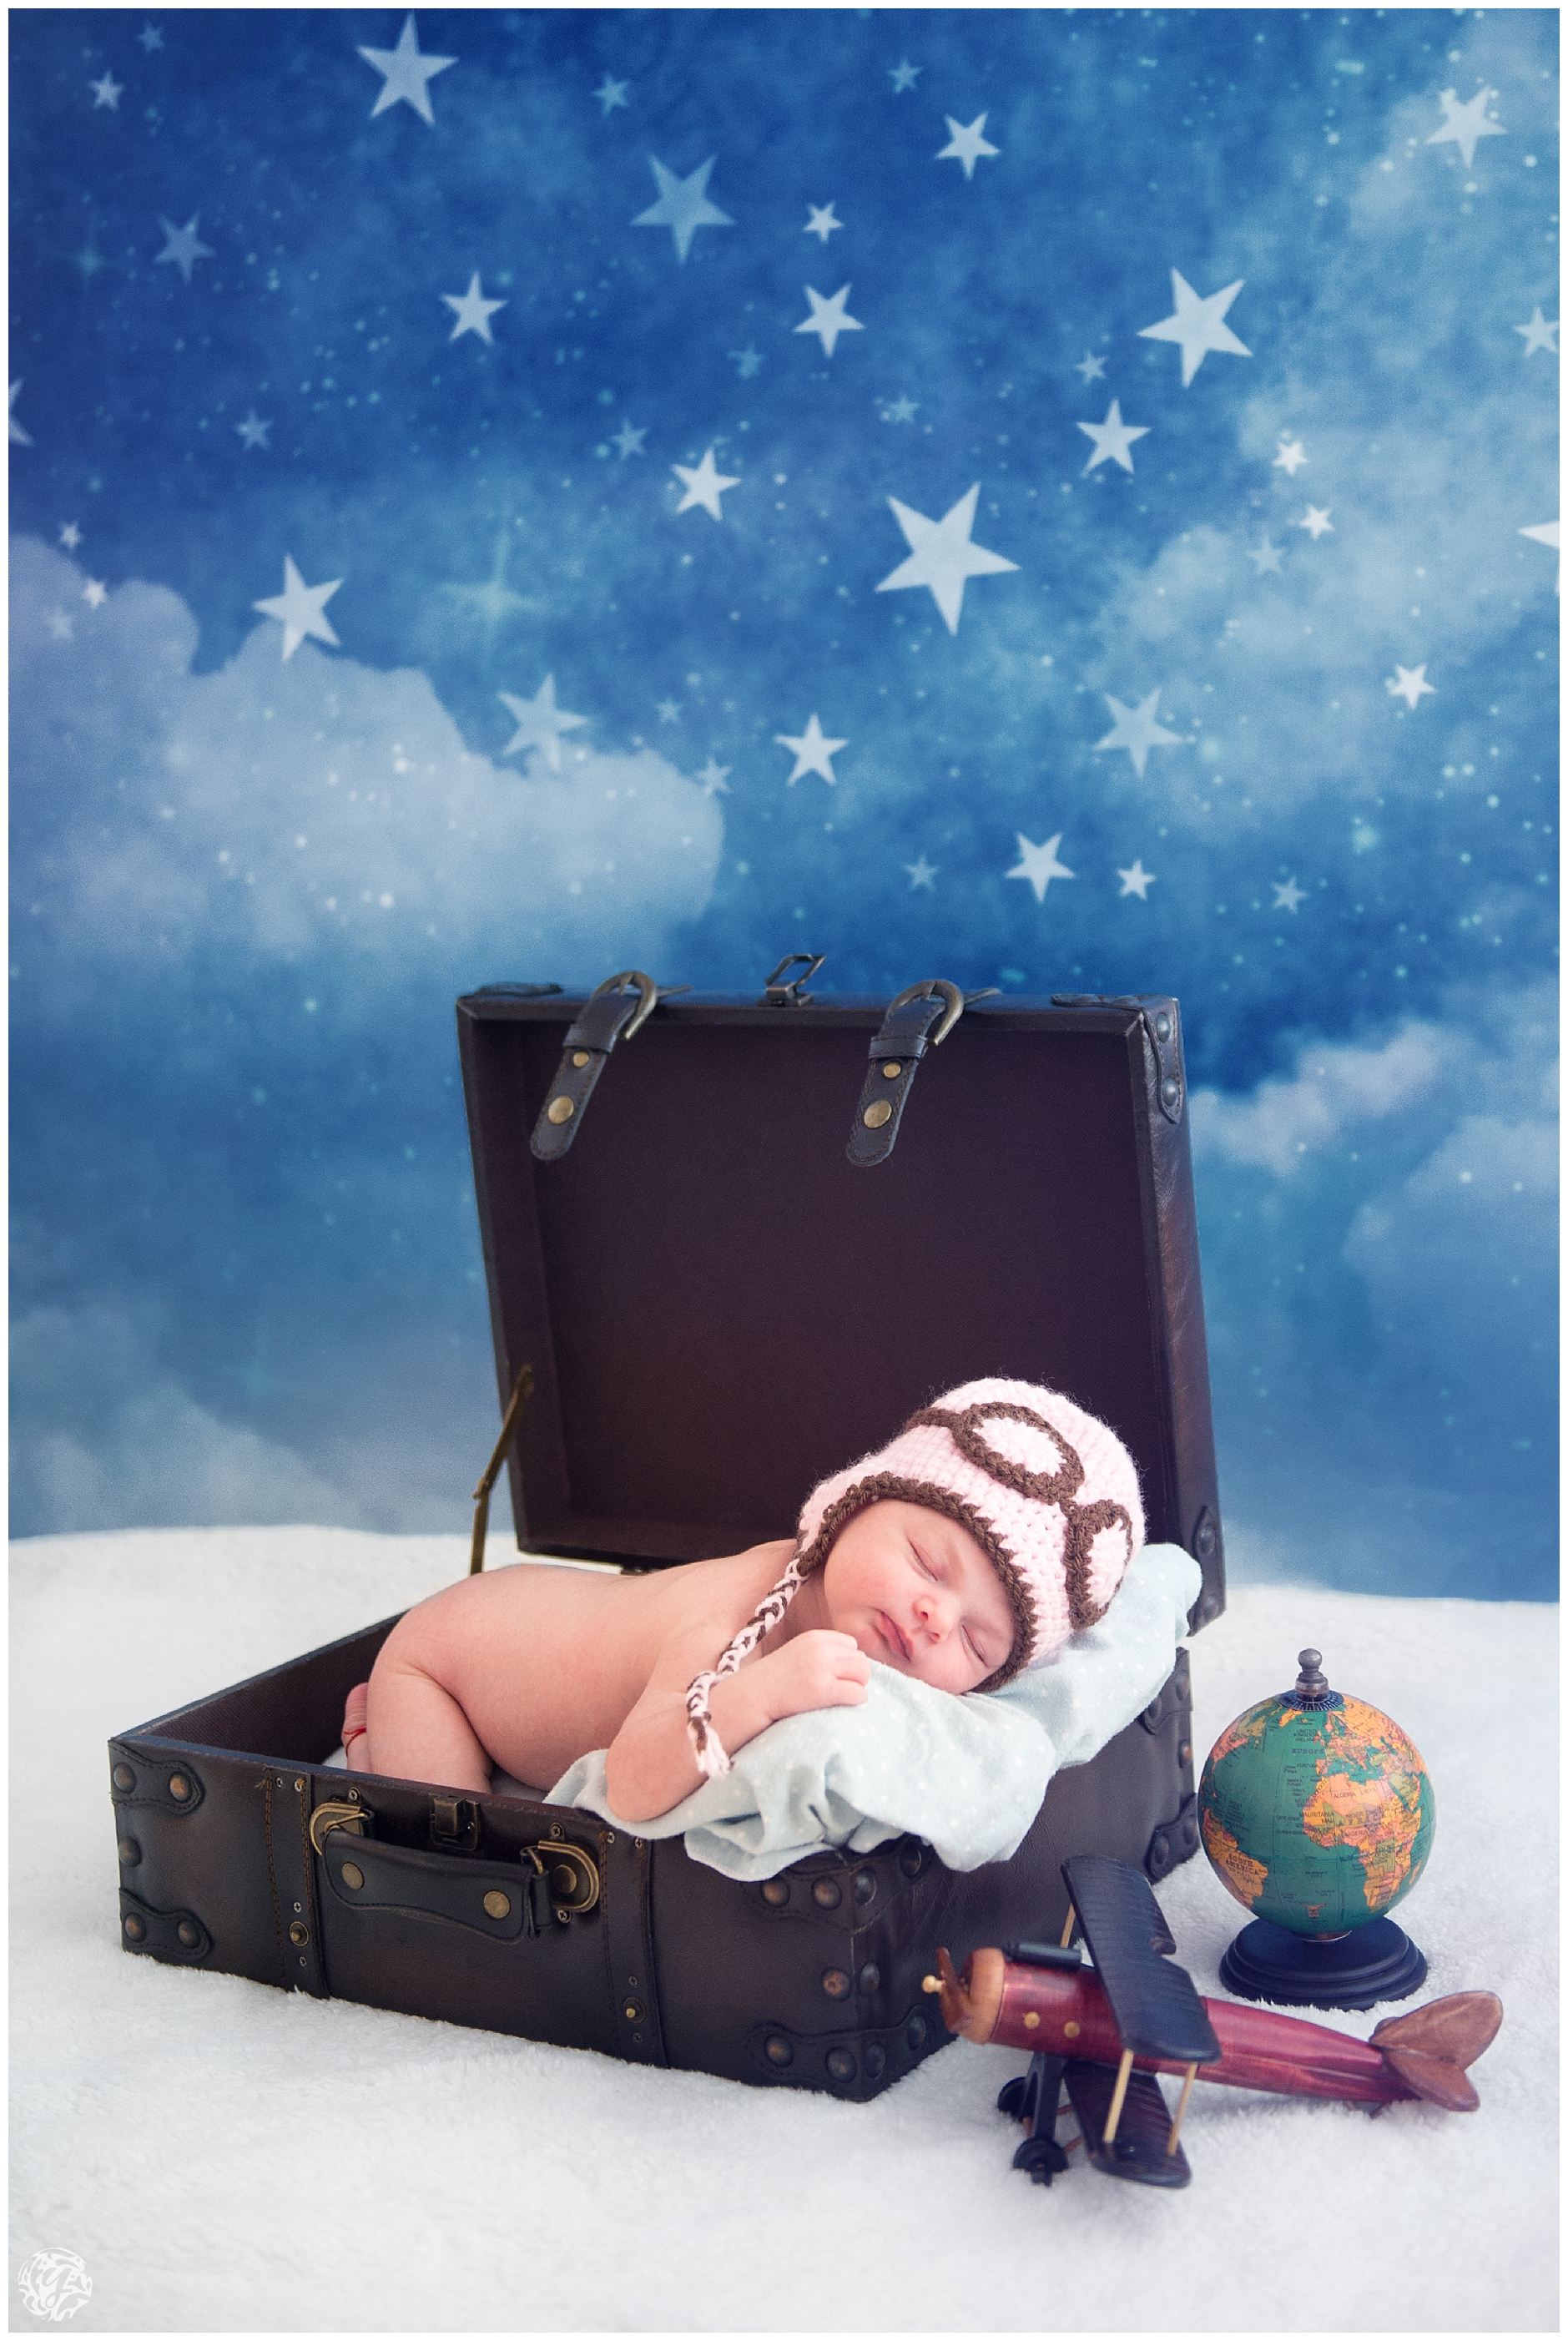 Yana's Photos Newborn Photography - Aviator - Suitcase - Plane - props.jpg